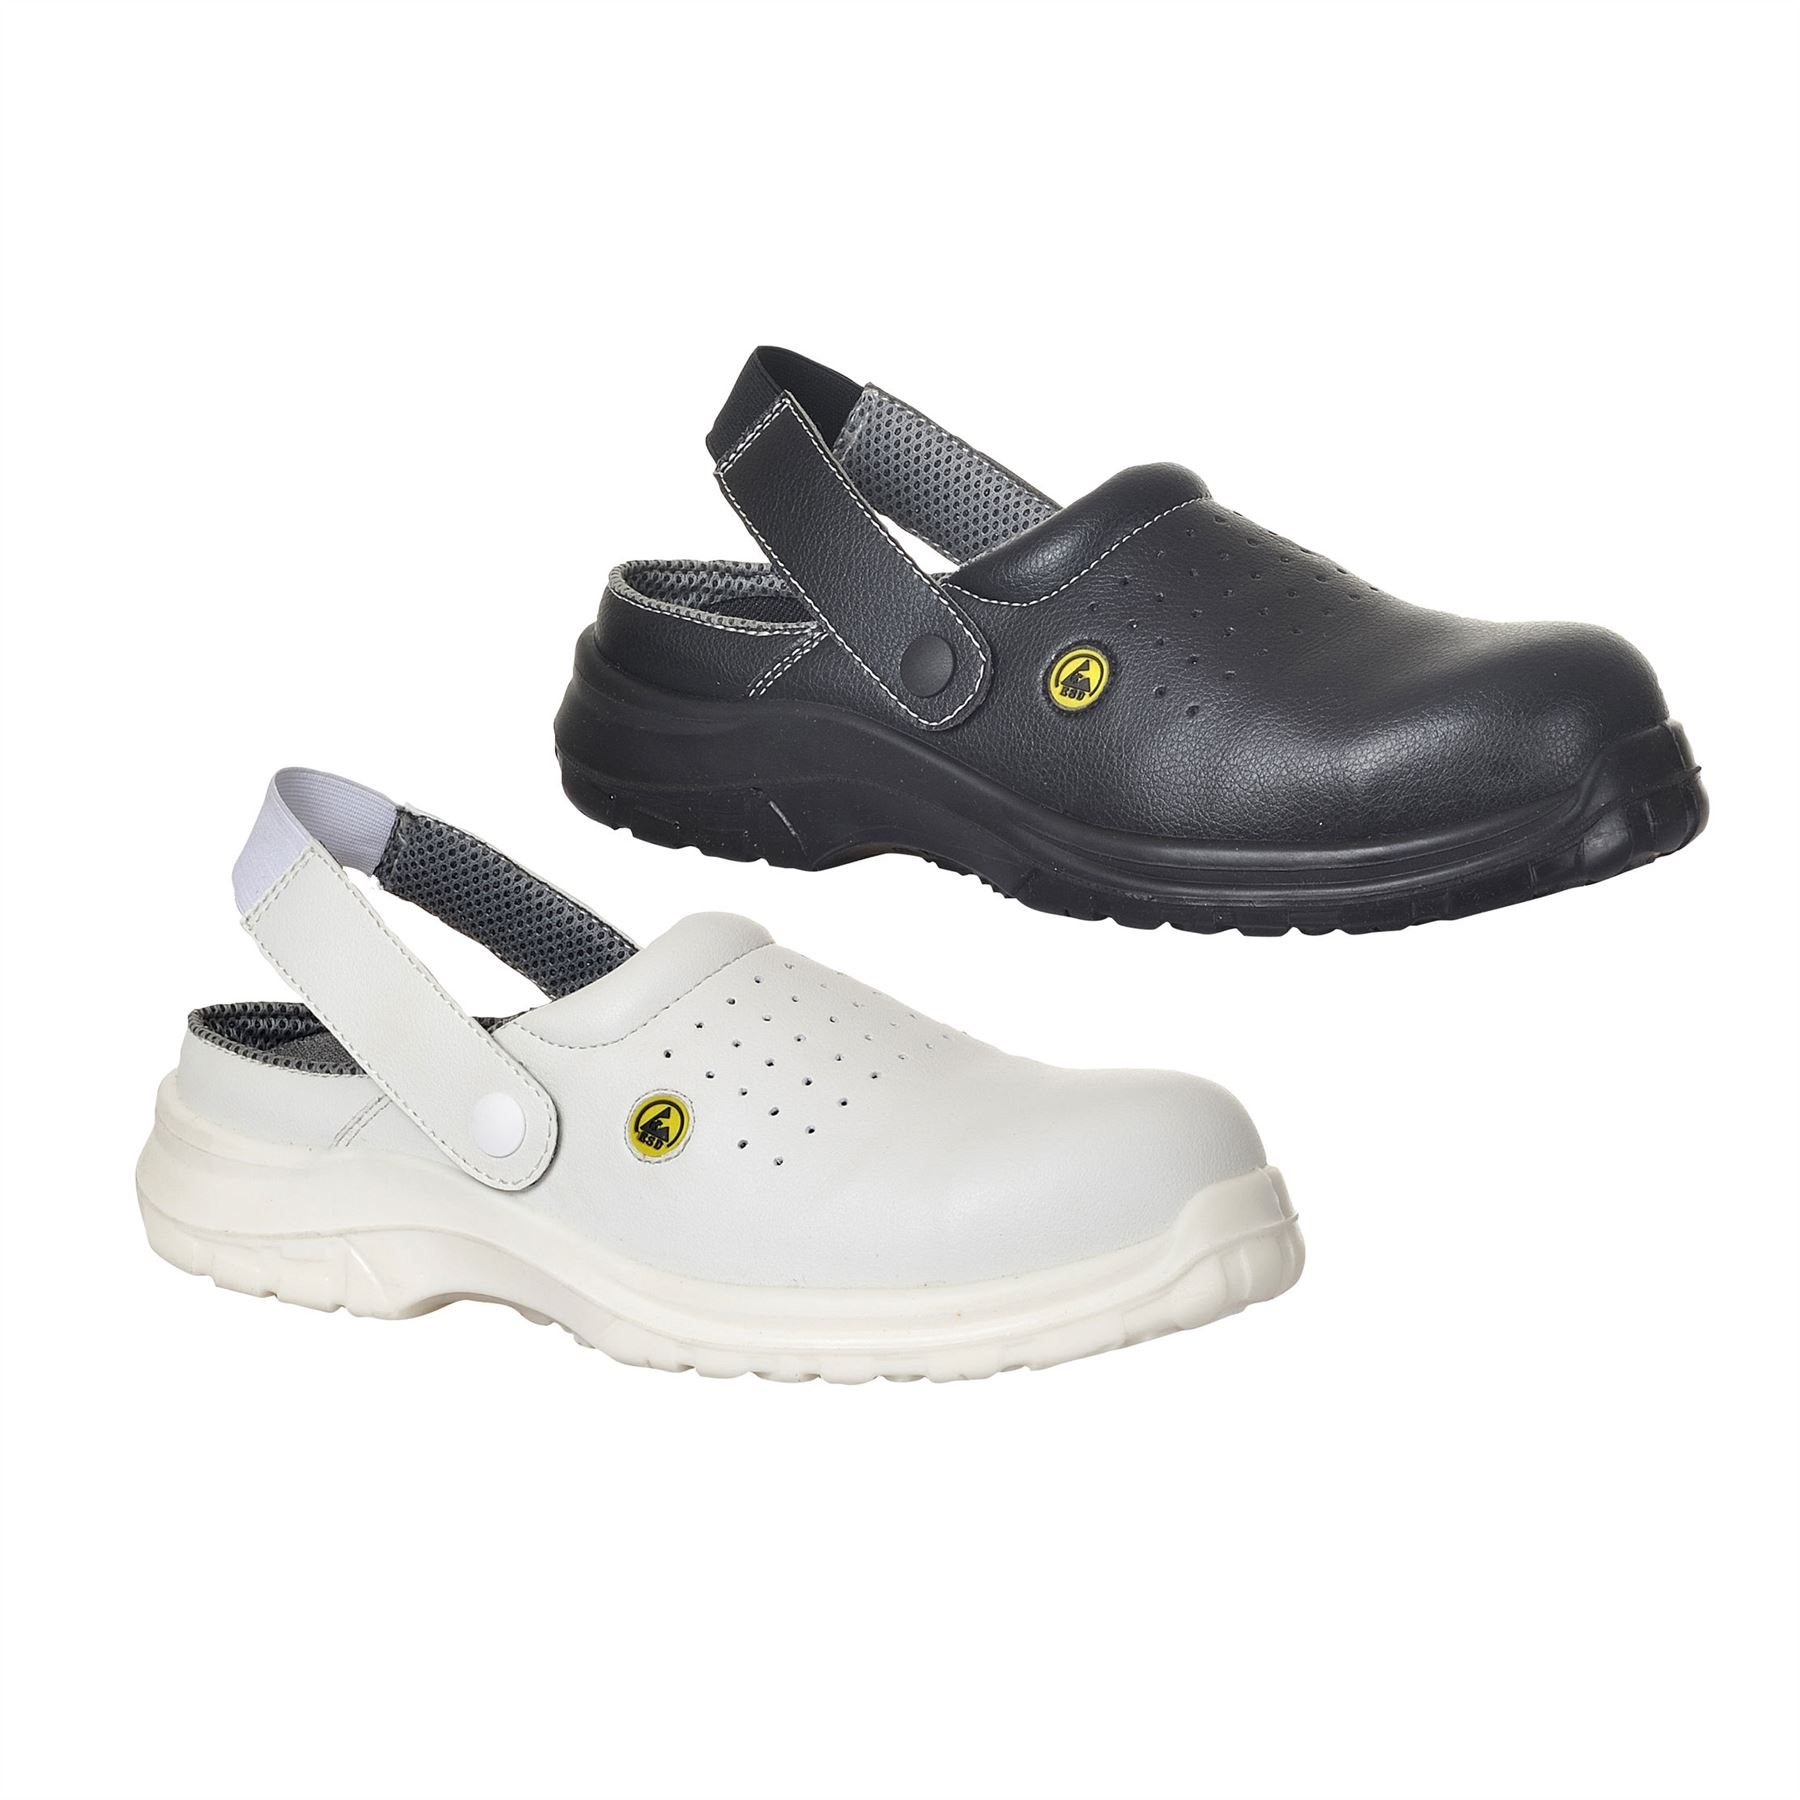 White half apron ebay - Portwest Esd Perforated Safety Clog Shoe Light Work Toe Cap Chef Baker Fc03